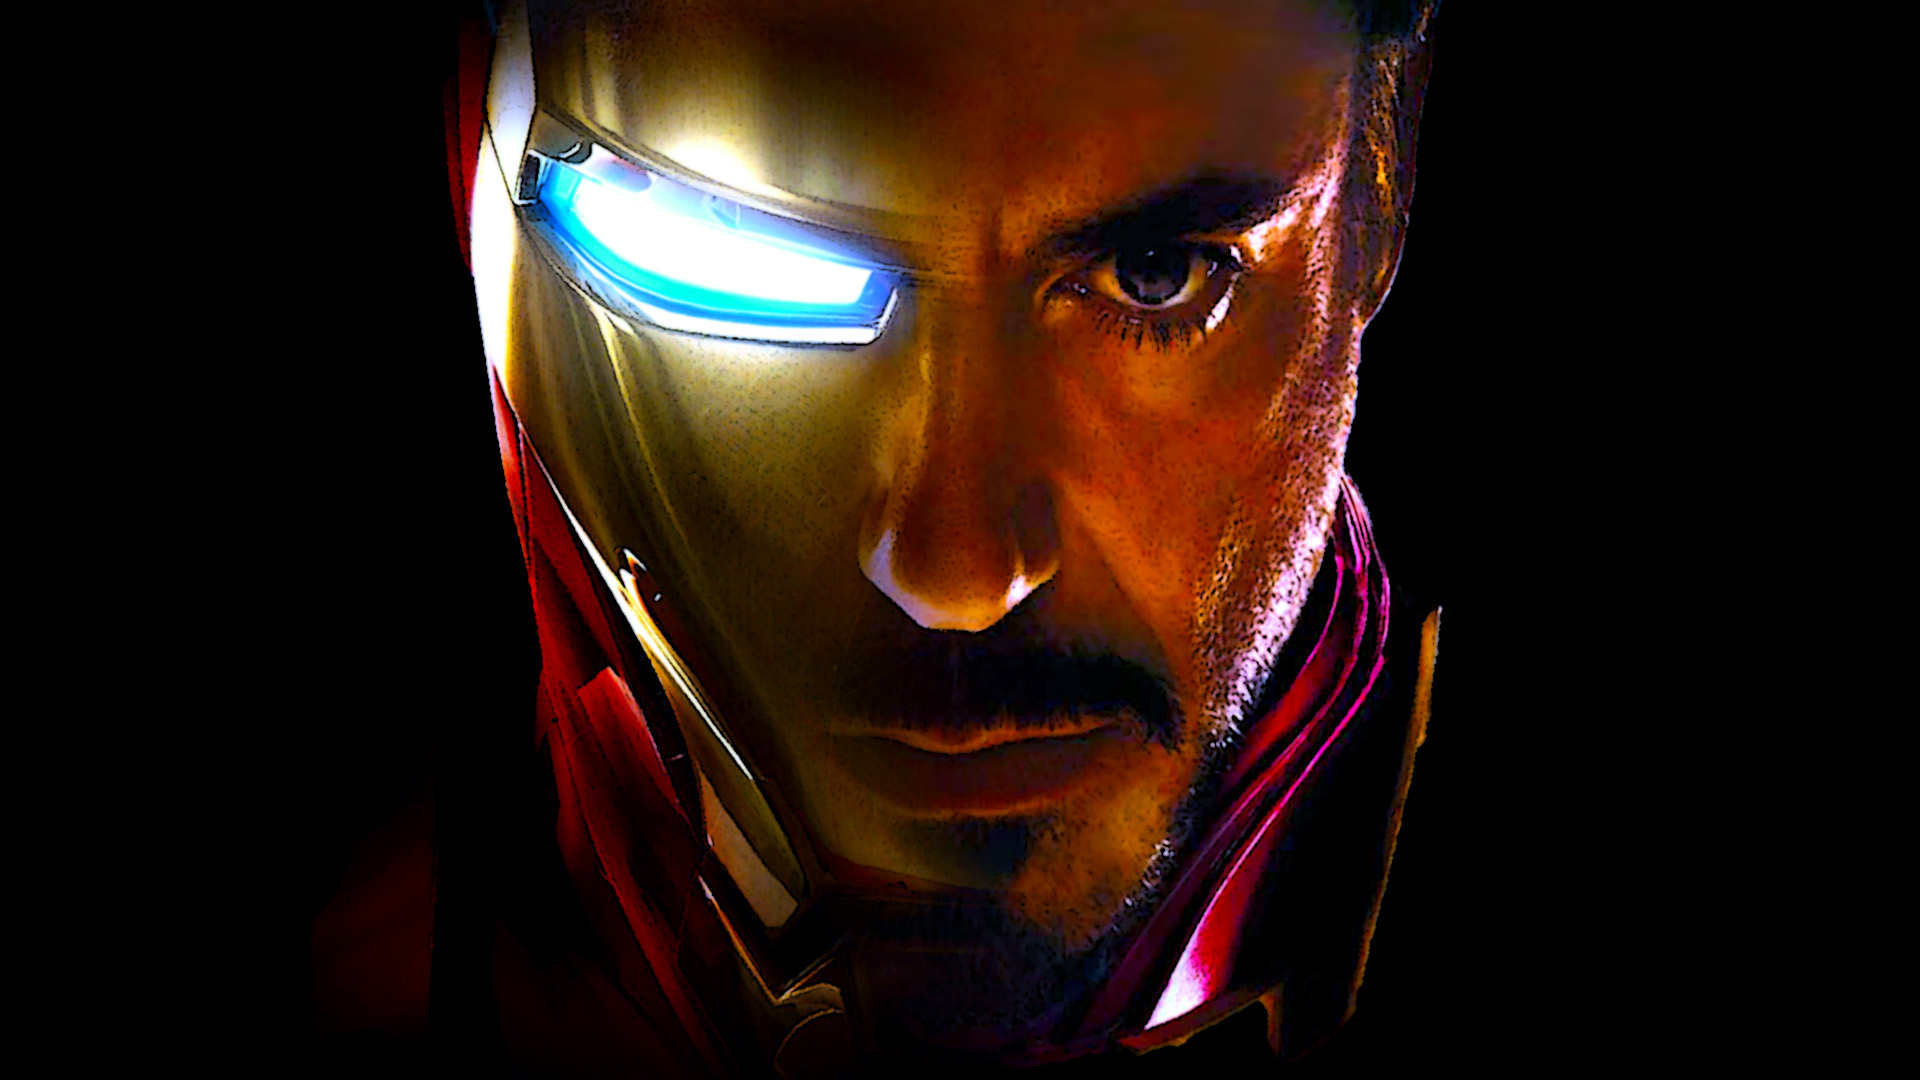 Hd Iron Man Wallpapers Posted By Zoey Peltier